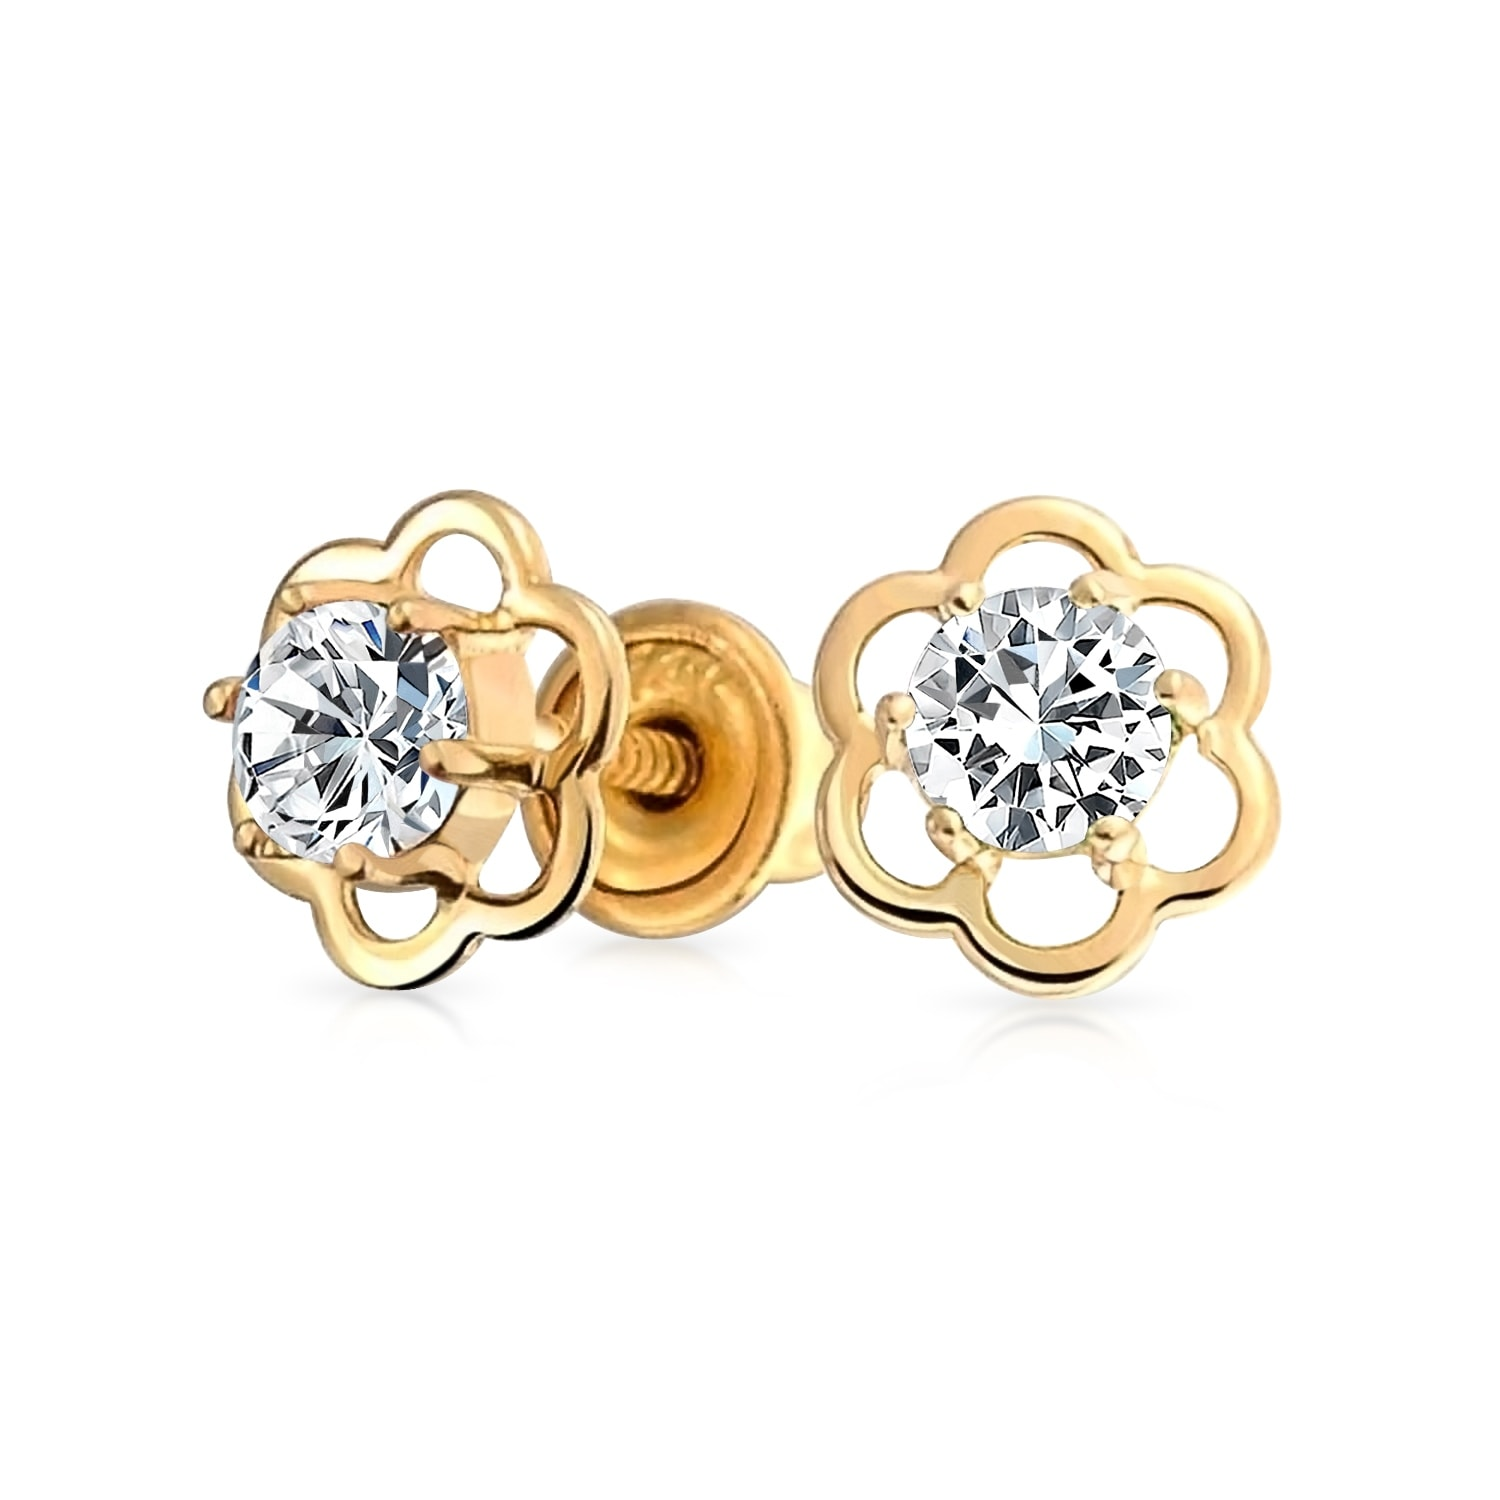 14K Yellow Gold CZ Flower and CZ Center Earrings for Women and Girls